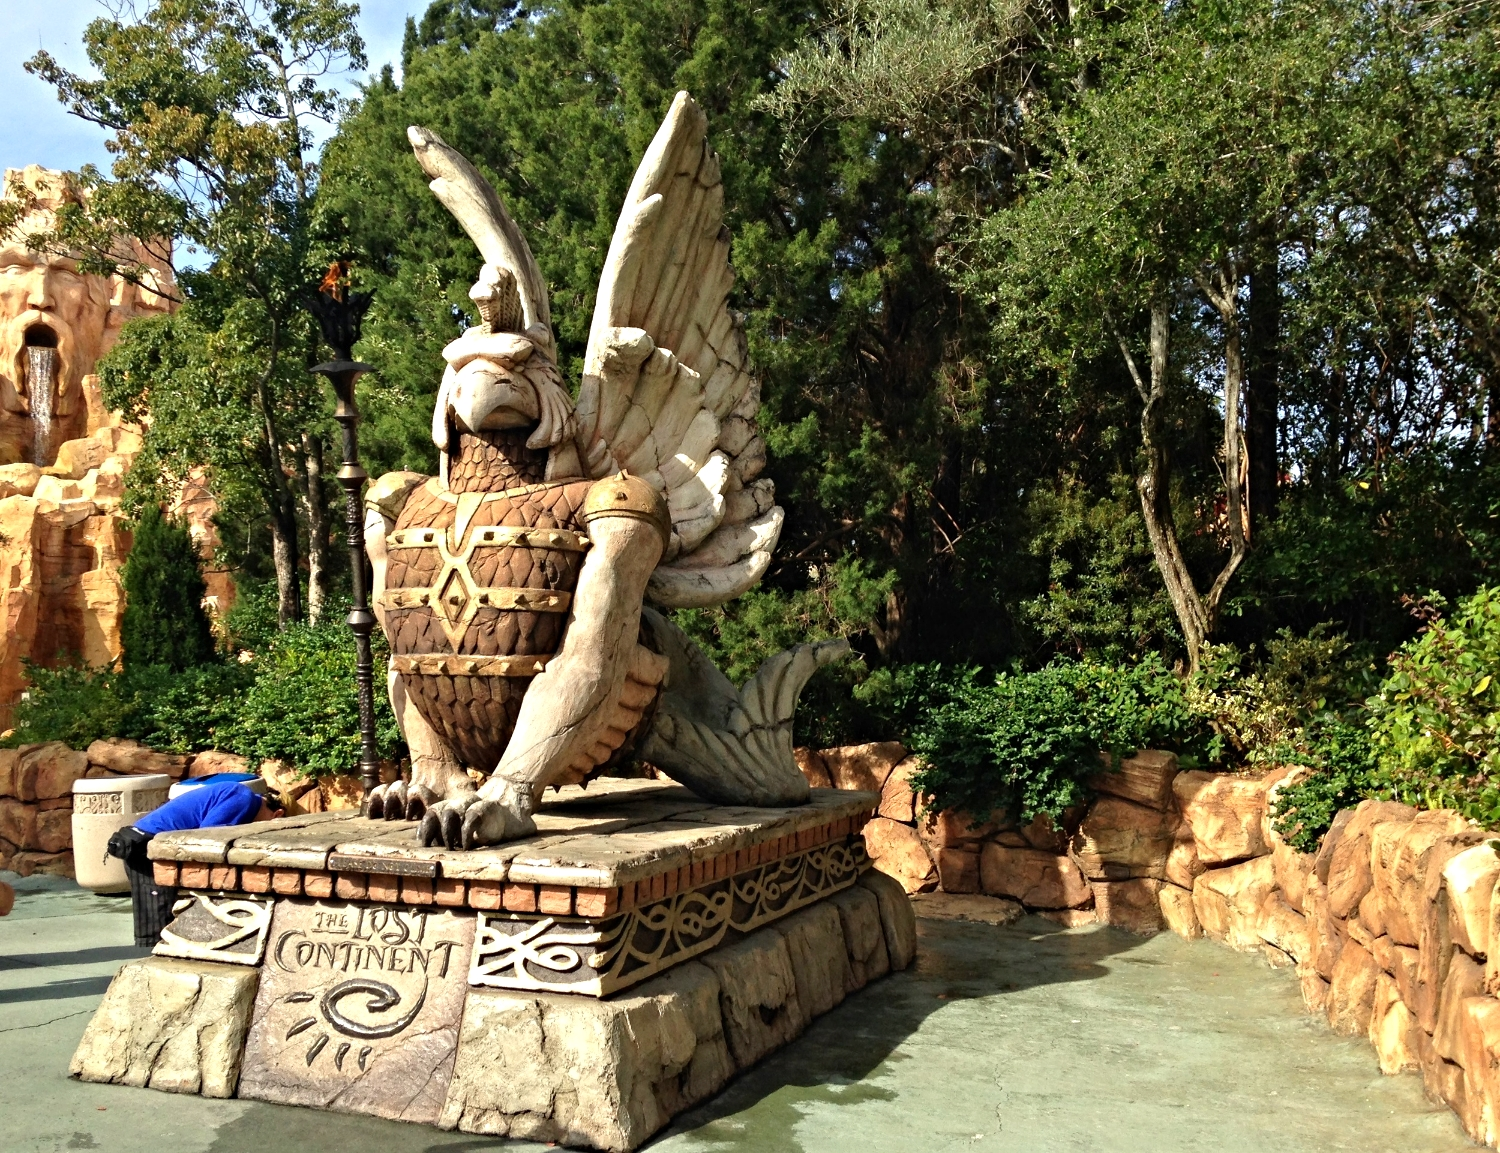 The Lost Continent statue in Islands of Adventure.